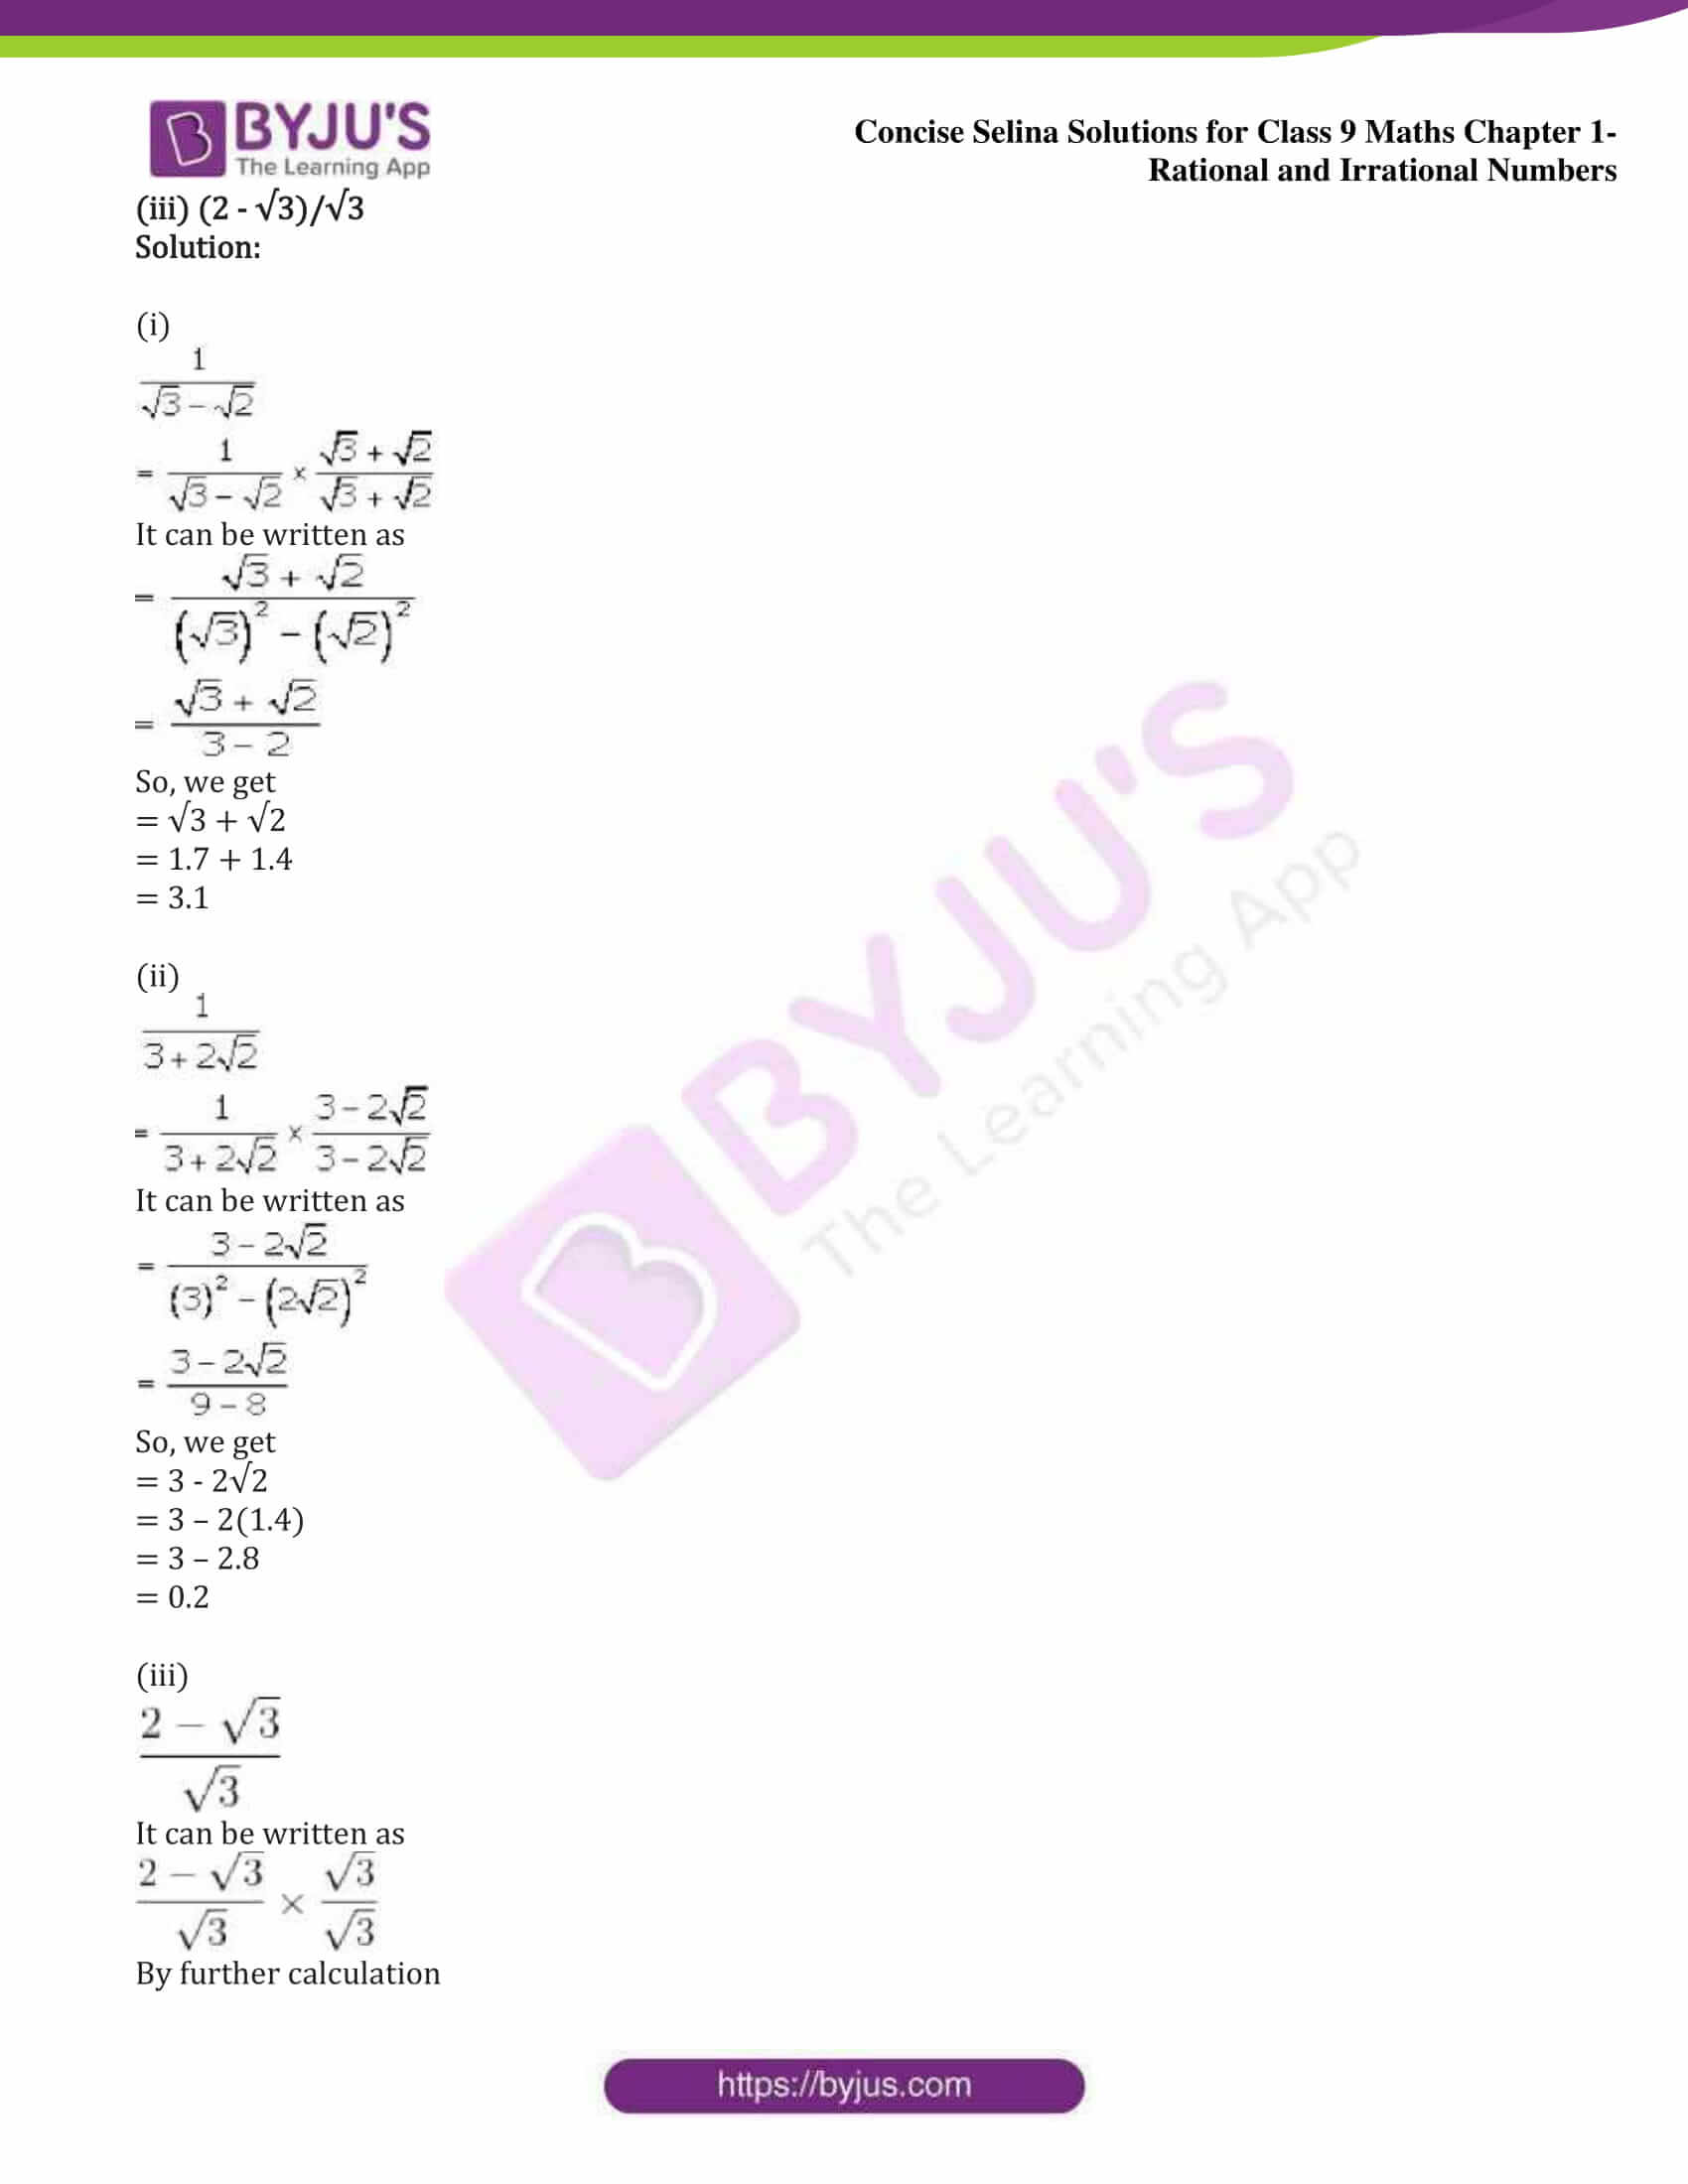 icse class 9 maths may13 selina solutions chapter 1 rational and irrational numbers 30